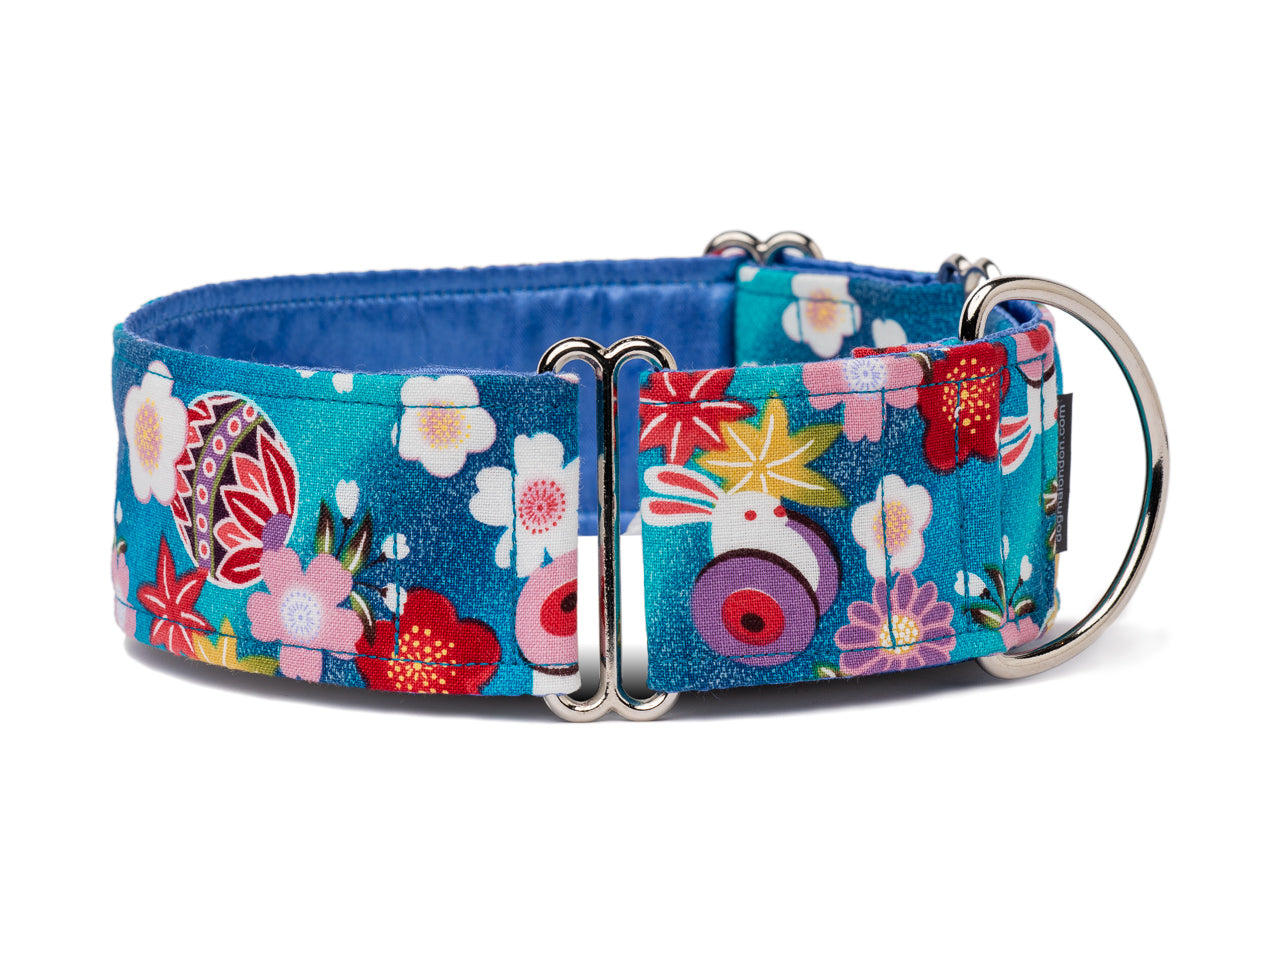 Flowers and bunnies collar with an Asian flair is perfect for the sophisticated yet playful pup!